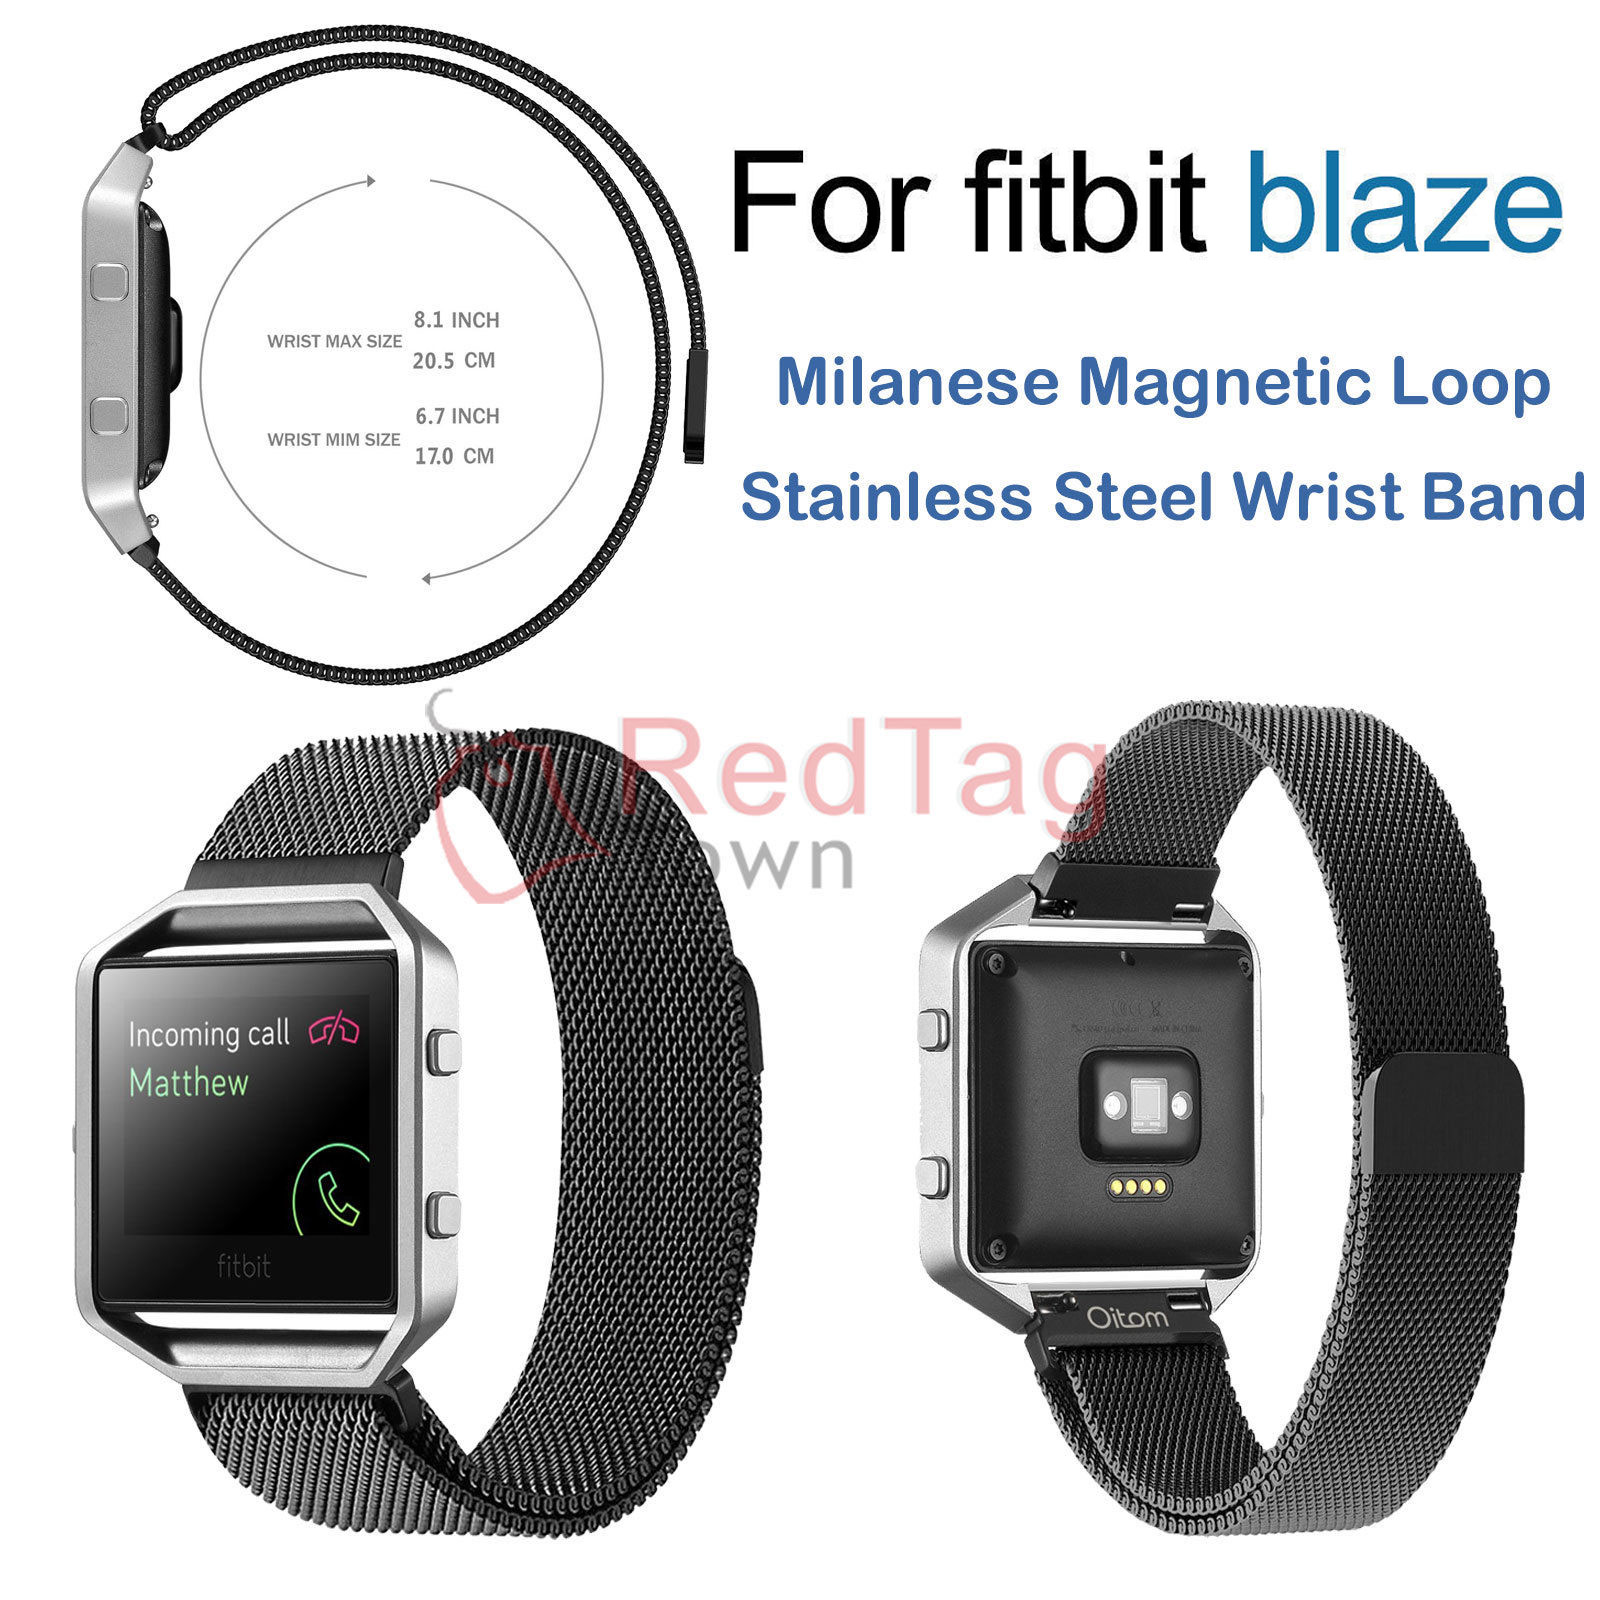 Milanese-Magnetic-Loop-Metal-Wrist-Watch-Band-Strap-Replacement-For-Fitbit-Blaze thumbnail 9